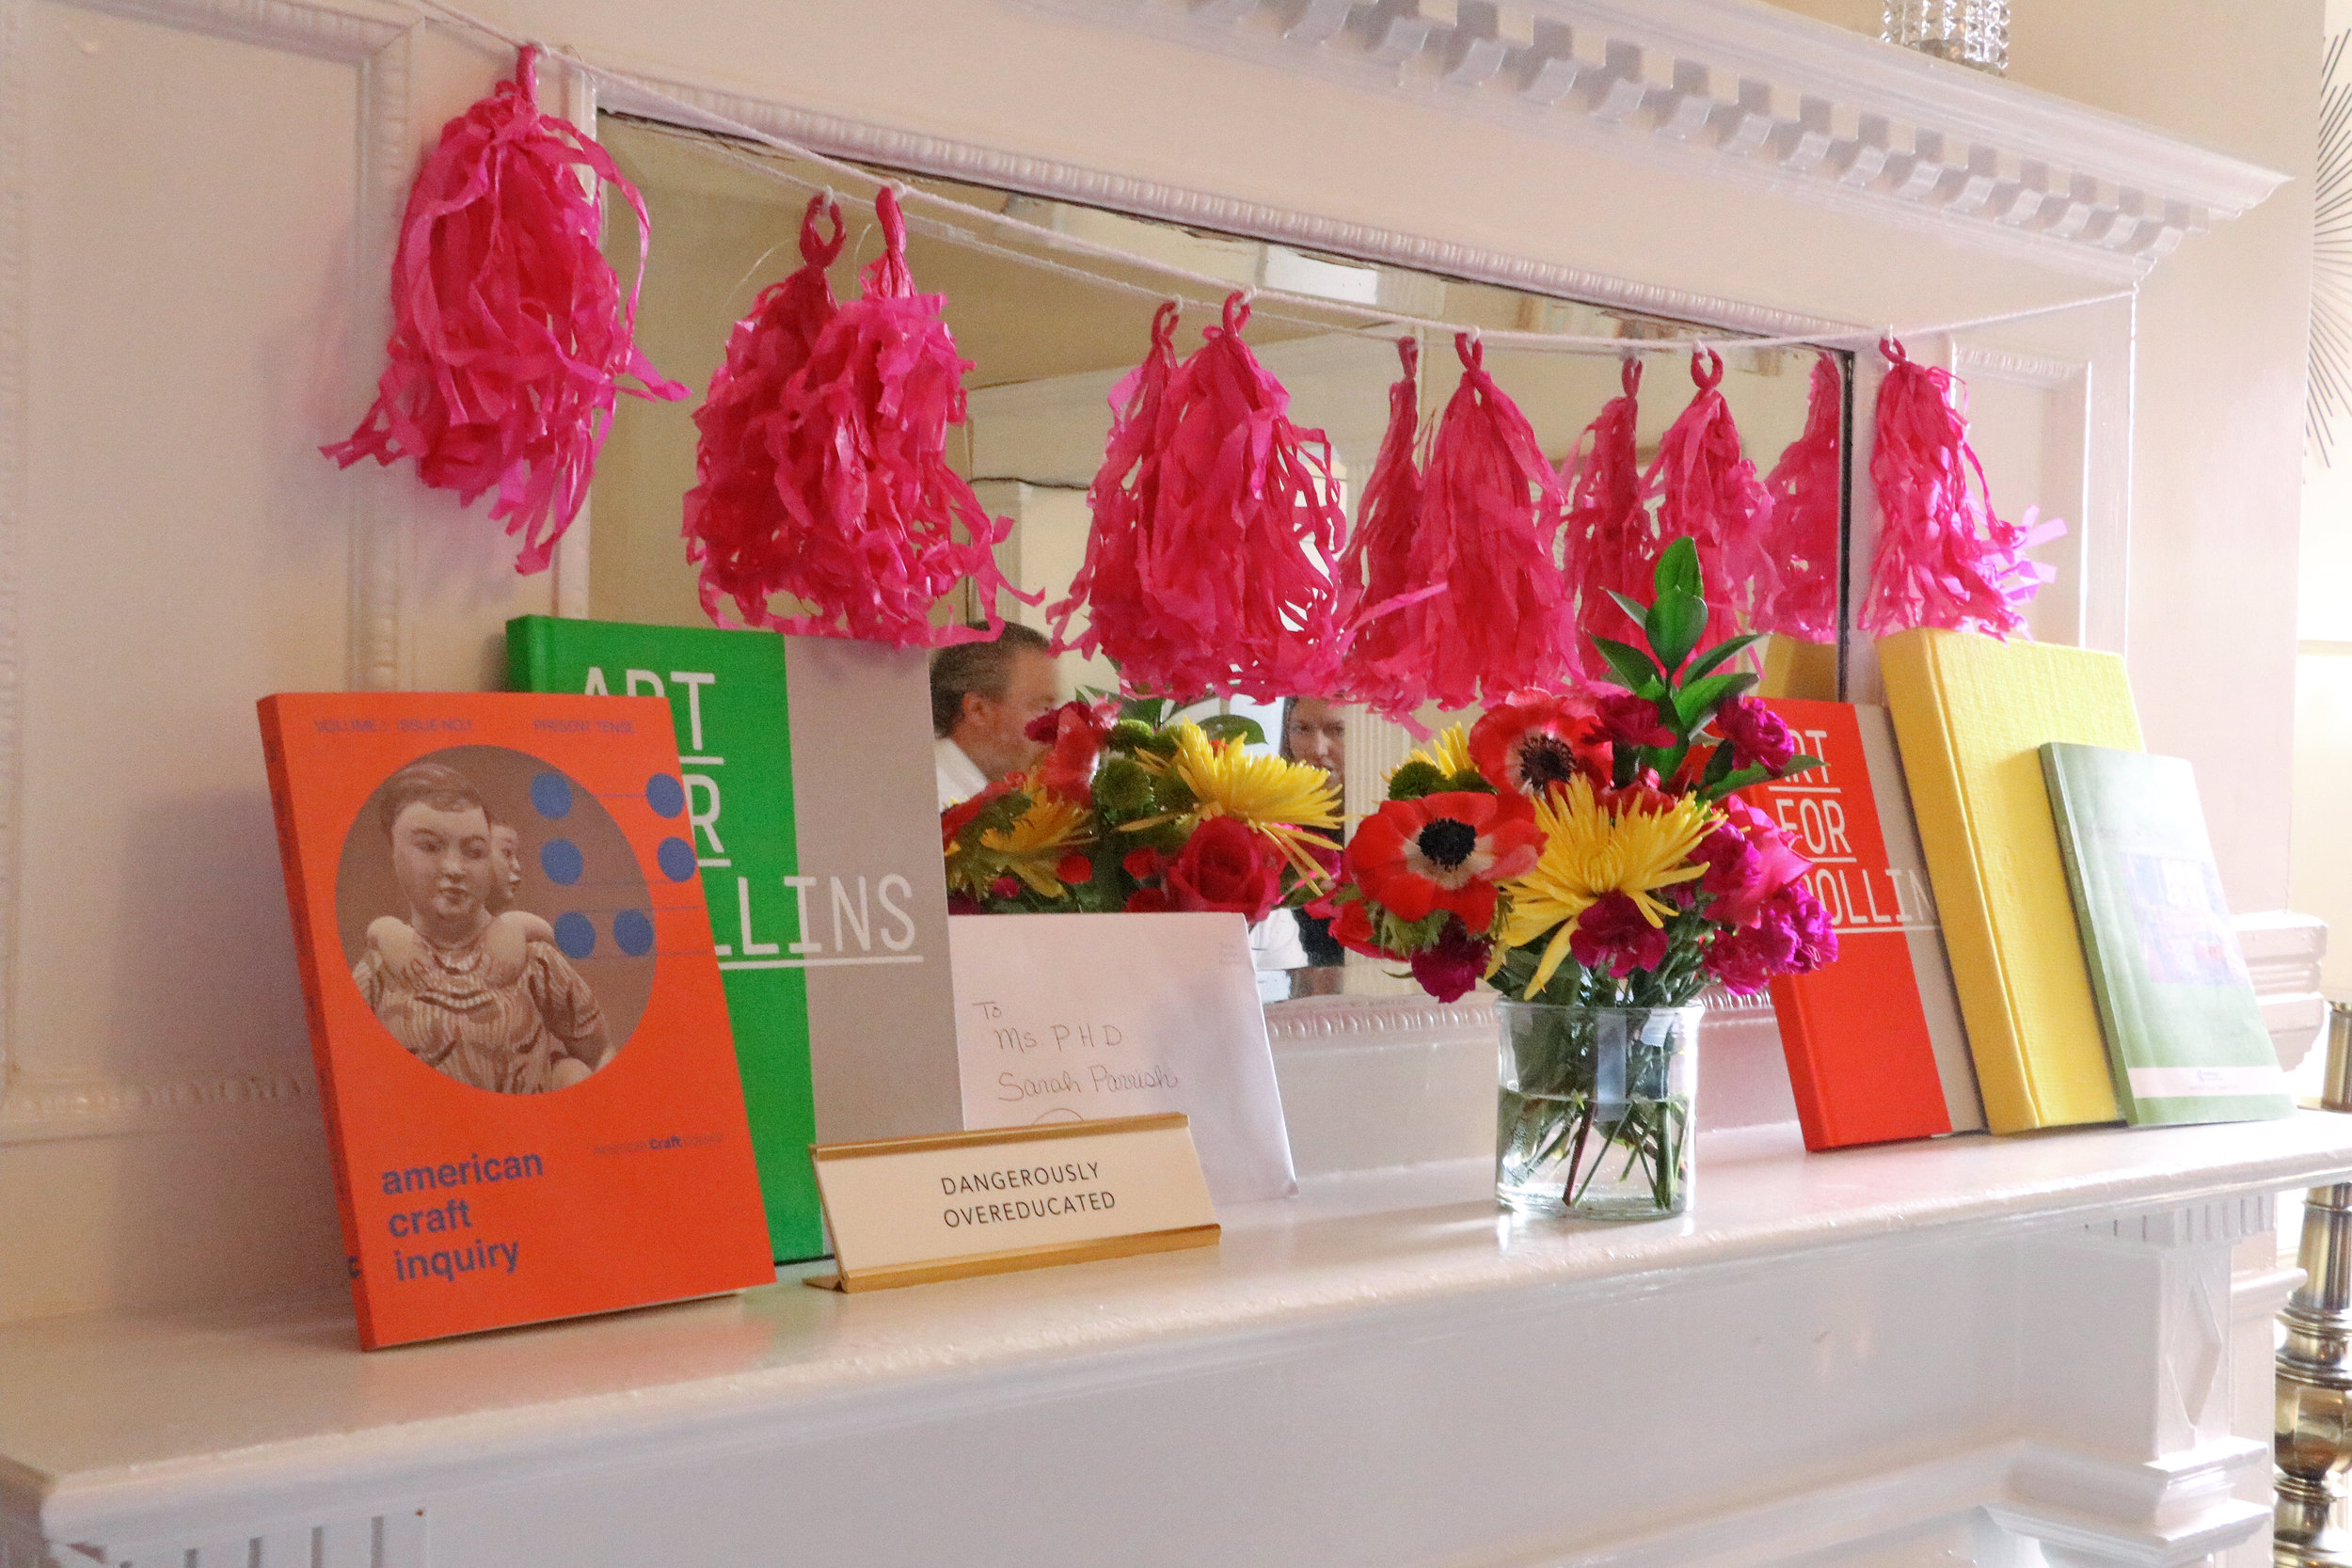 A perk of being a contemporary art historian is that your vibrant publication covers can do double-duty as decorations!